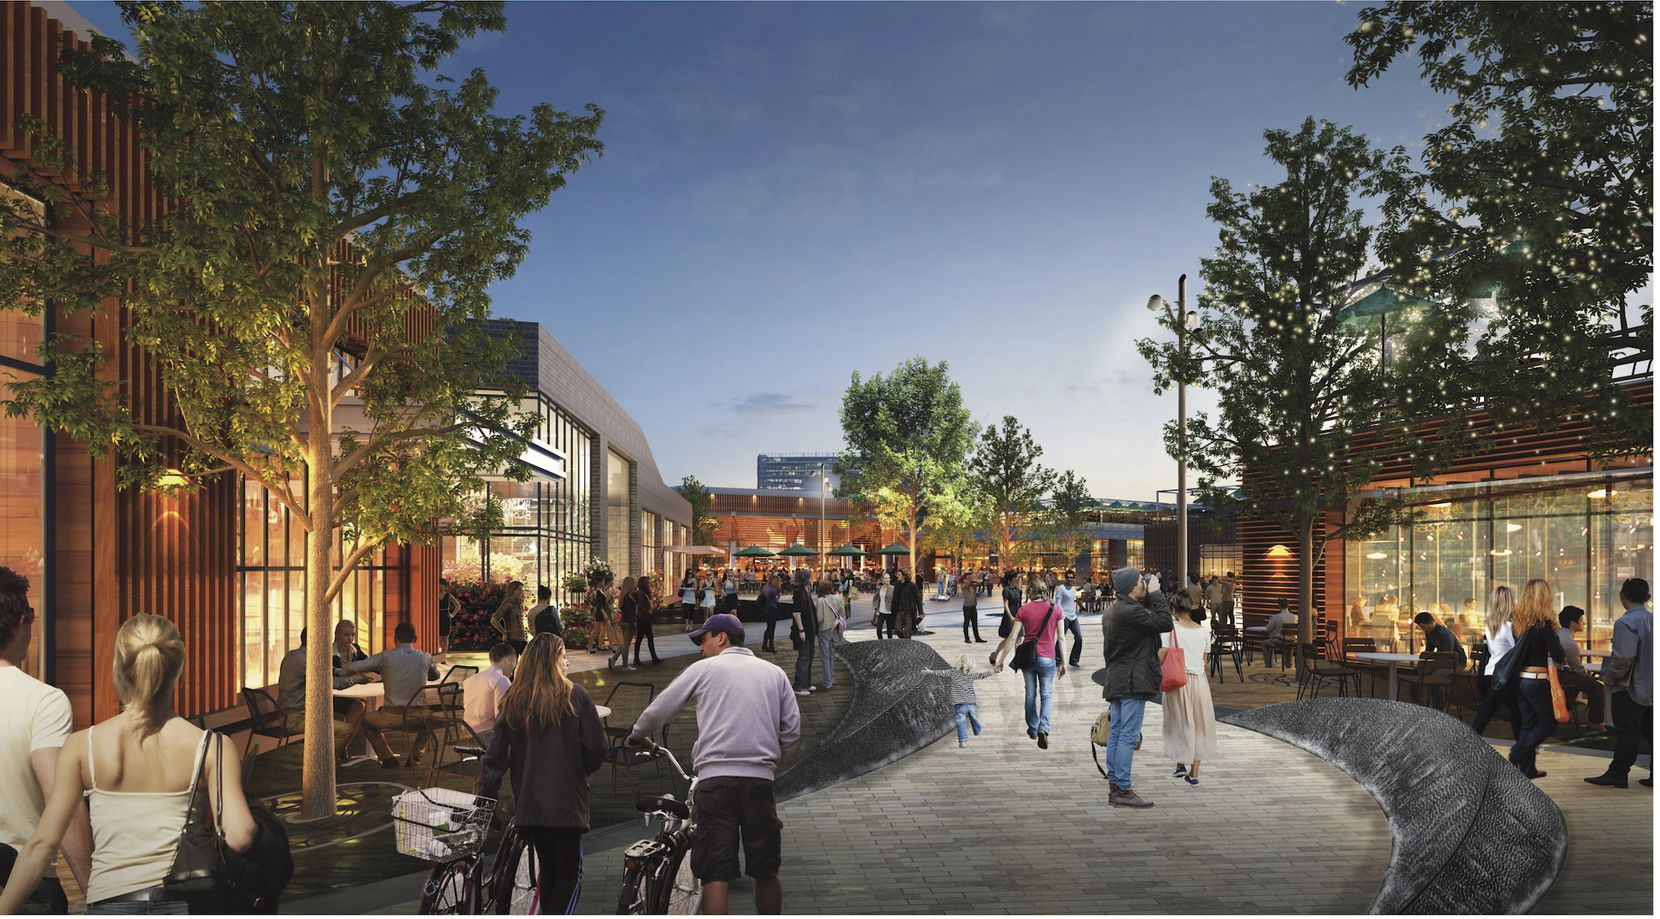 The Strand is planned for 300,000 square feet of retail space.